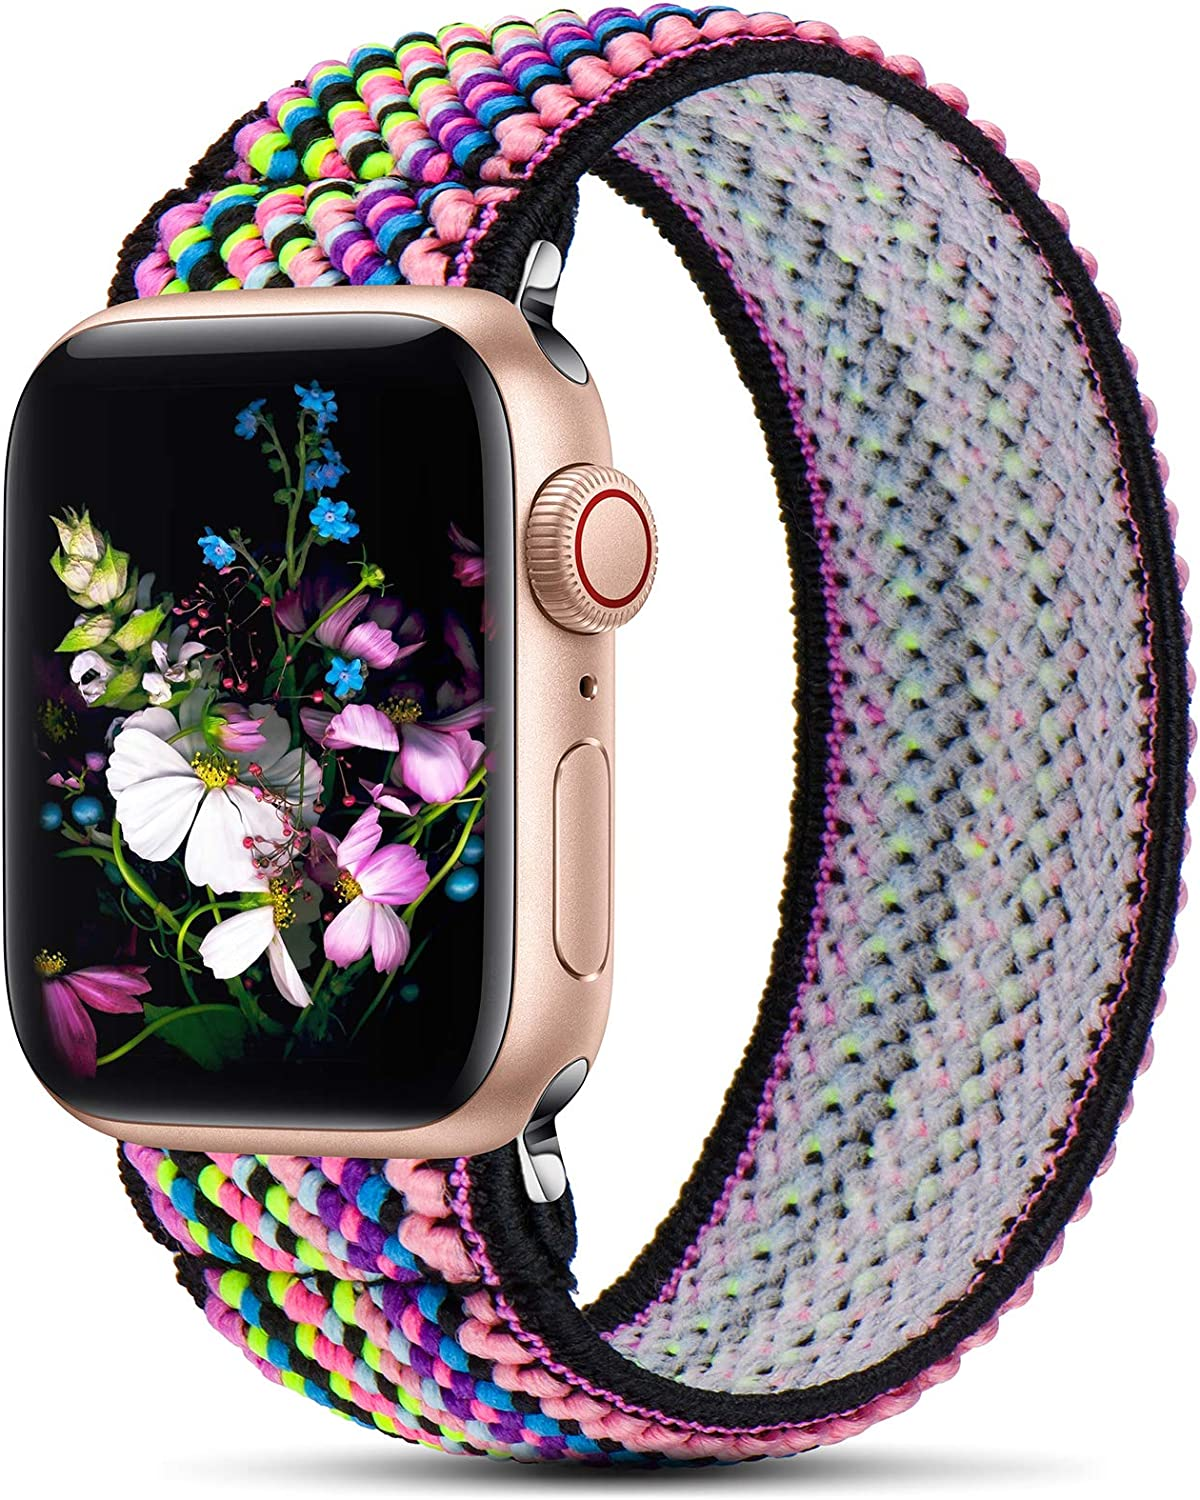 GeekSpark Elastic Band Compatible for Apple Watch Bands 38mm 40mm 42mm 44mm Stretchy Loop Strap Replacement Wristband for iwatch Series 6/SE/5/4/3/2/1 (Colorful Stripe S/M 38mm/40mm)